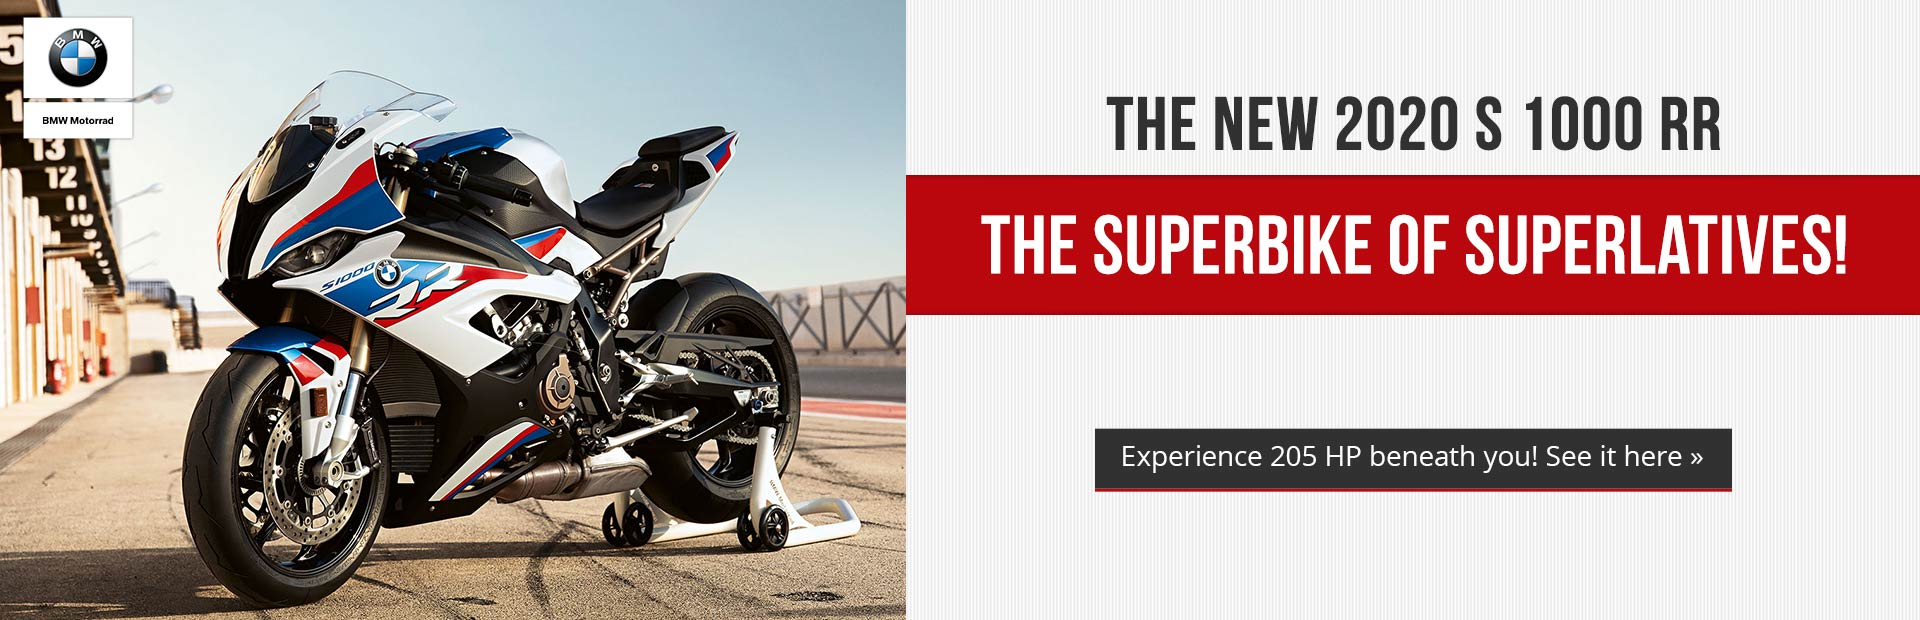 THE NEW 2020 S 1000 RR. THE SUPER-BIKE OF SUPERLATIVES! Experience 205 HP beneath you! Click here no